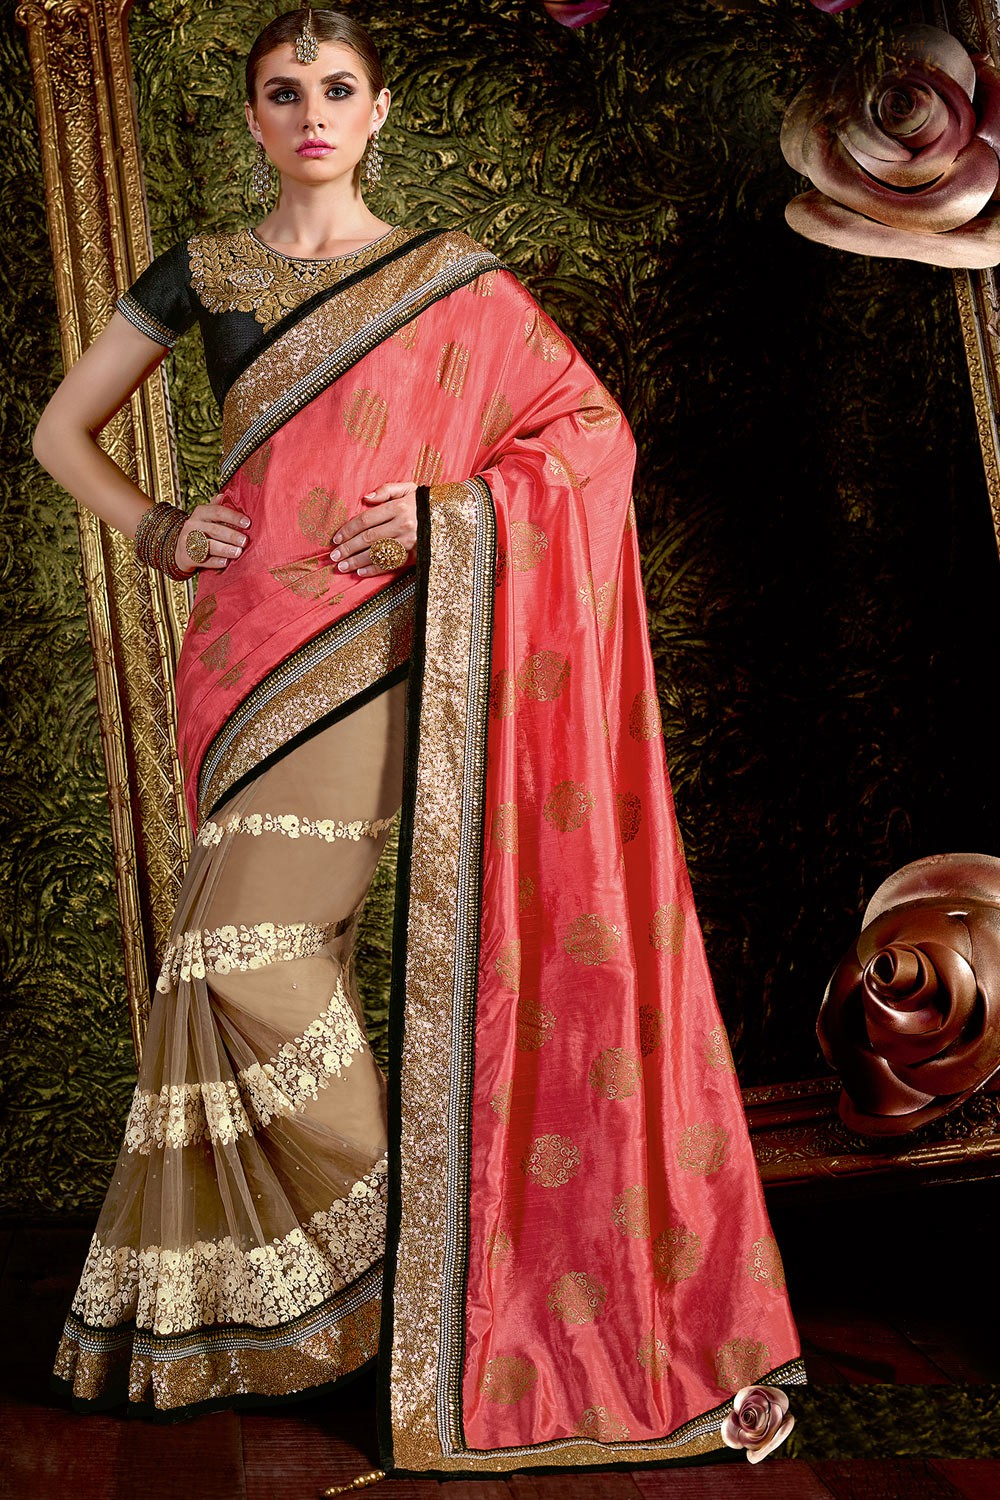 Paaneri Designer Shade Pink With Light Brown Color Foil Print Shimmer Border Net & Art Silk Saree-Product Code-17119441504